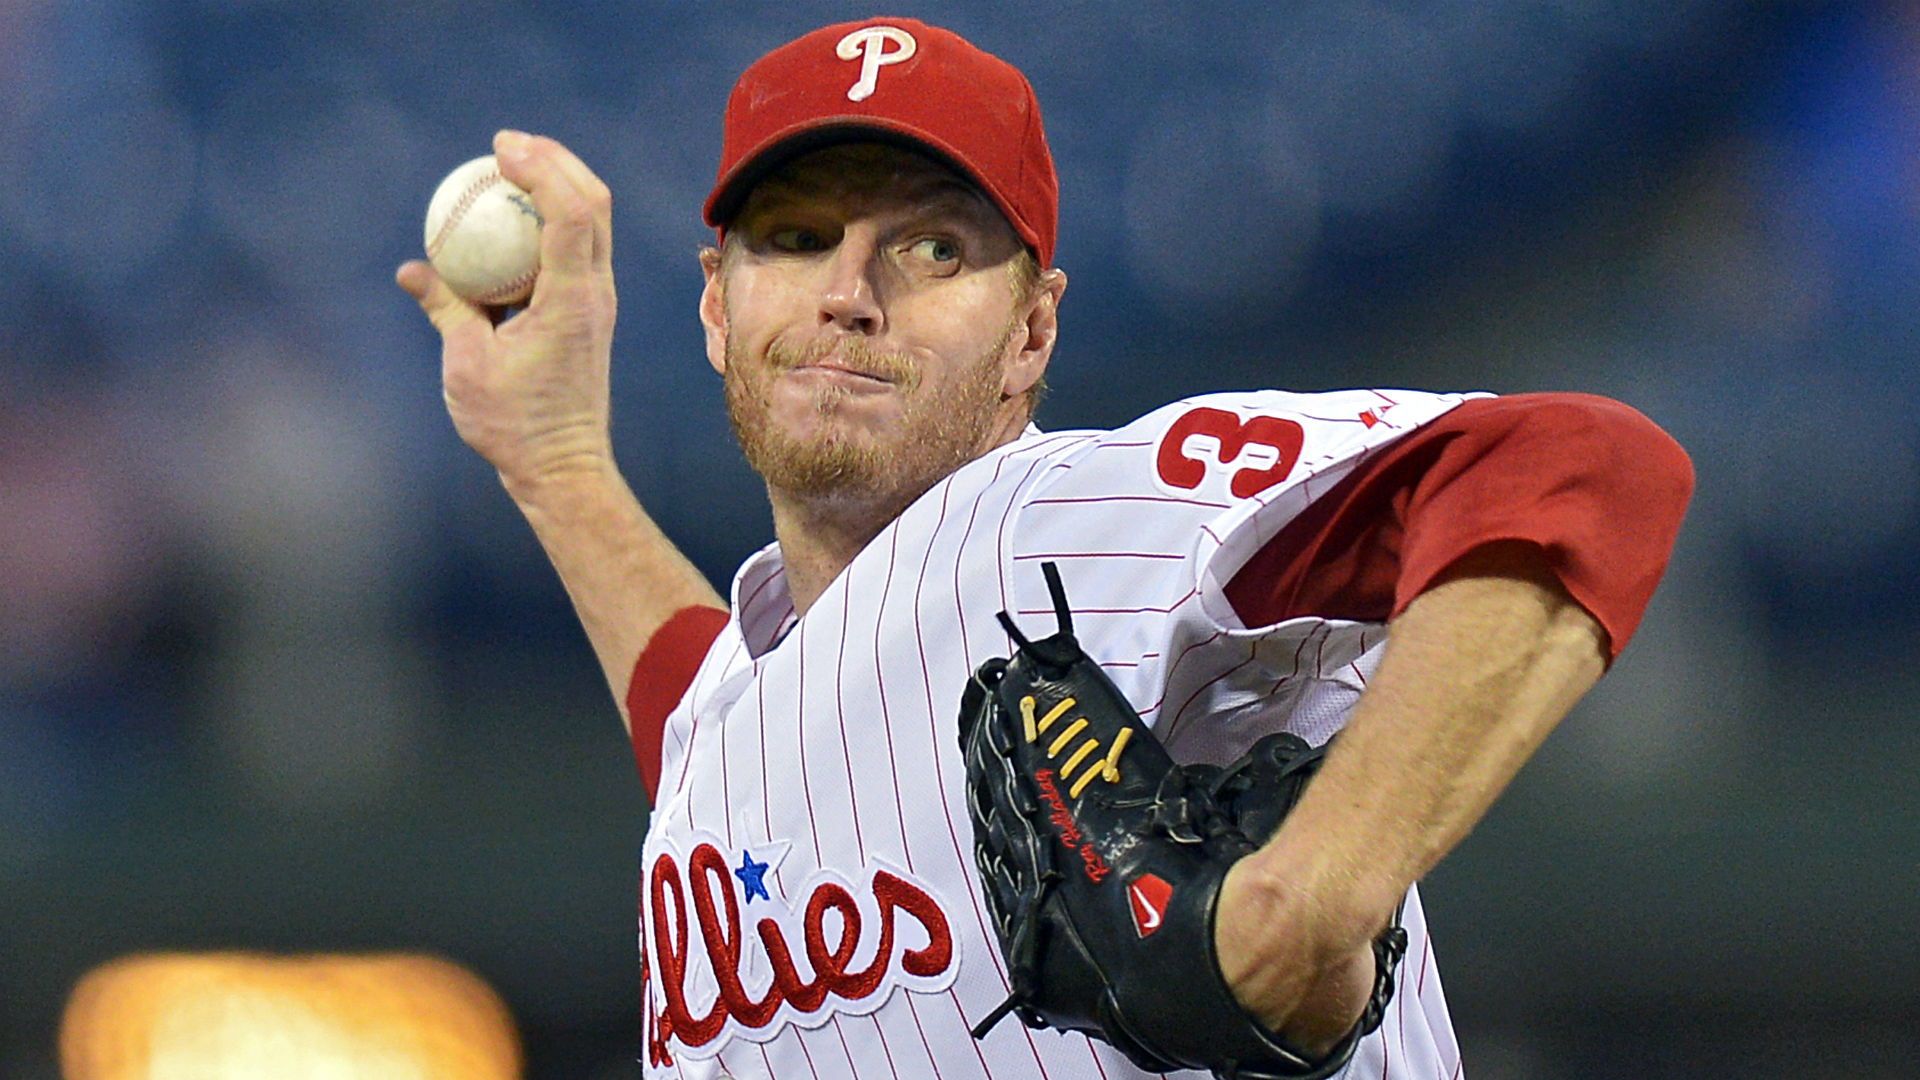 halladay-roy-032415-usnews-getty-ftr